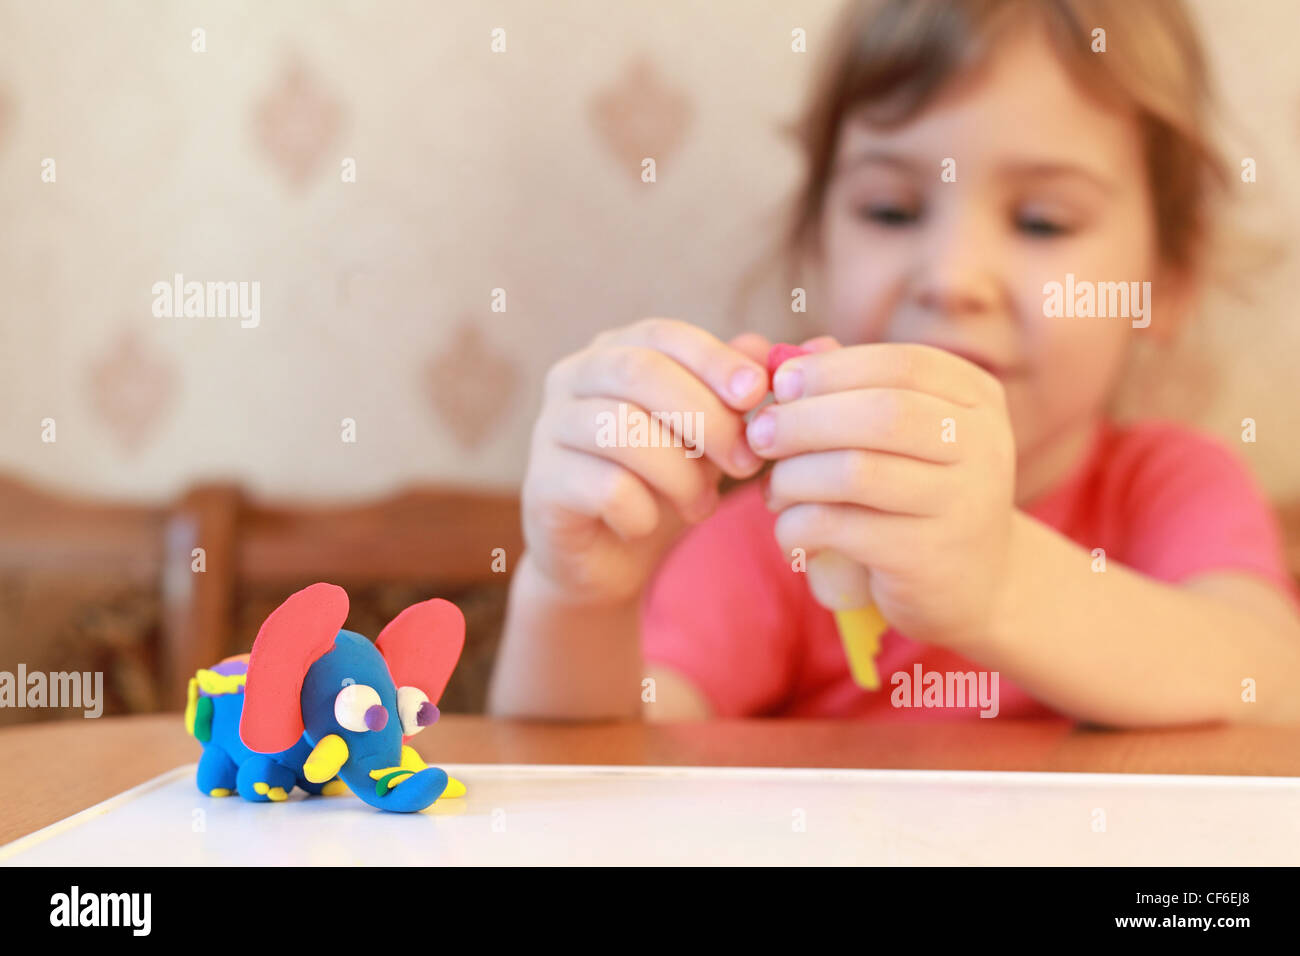 Home-made elephant which was modeling by girl on table, focus on an elephant - Stock Image